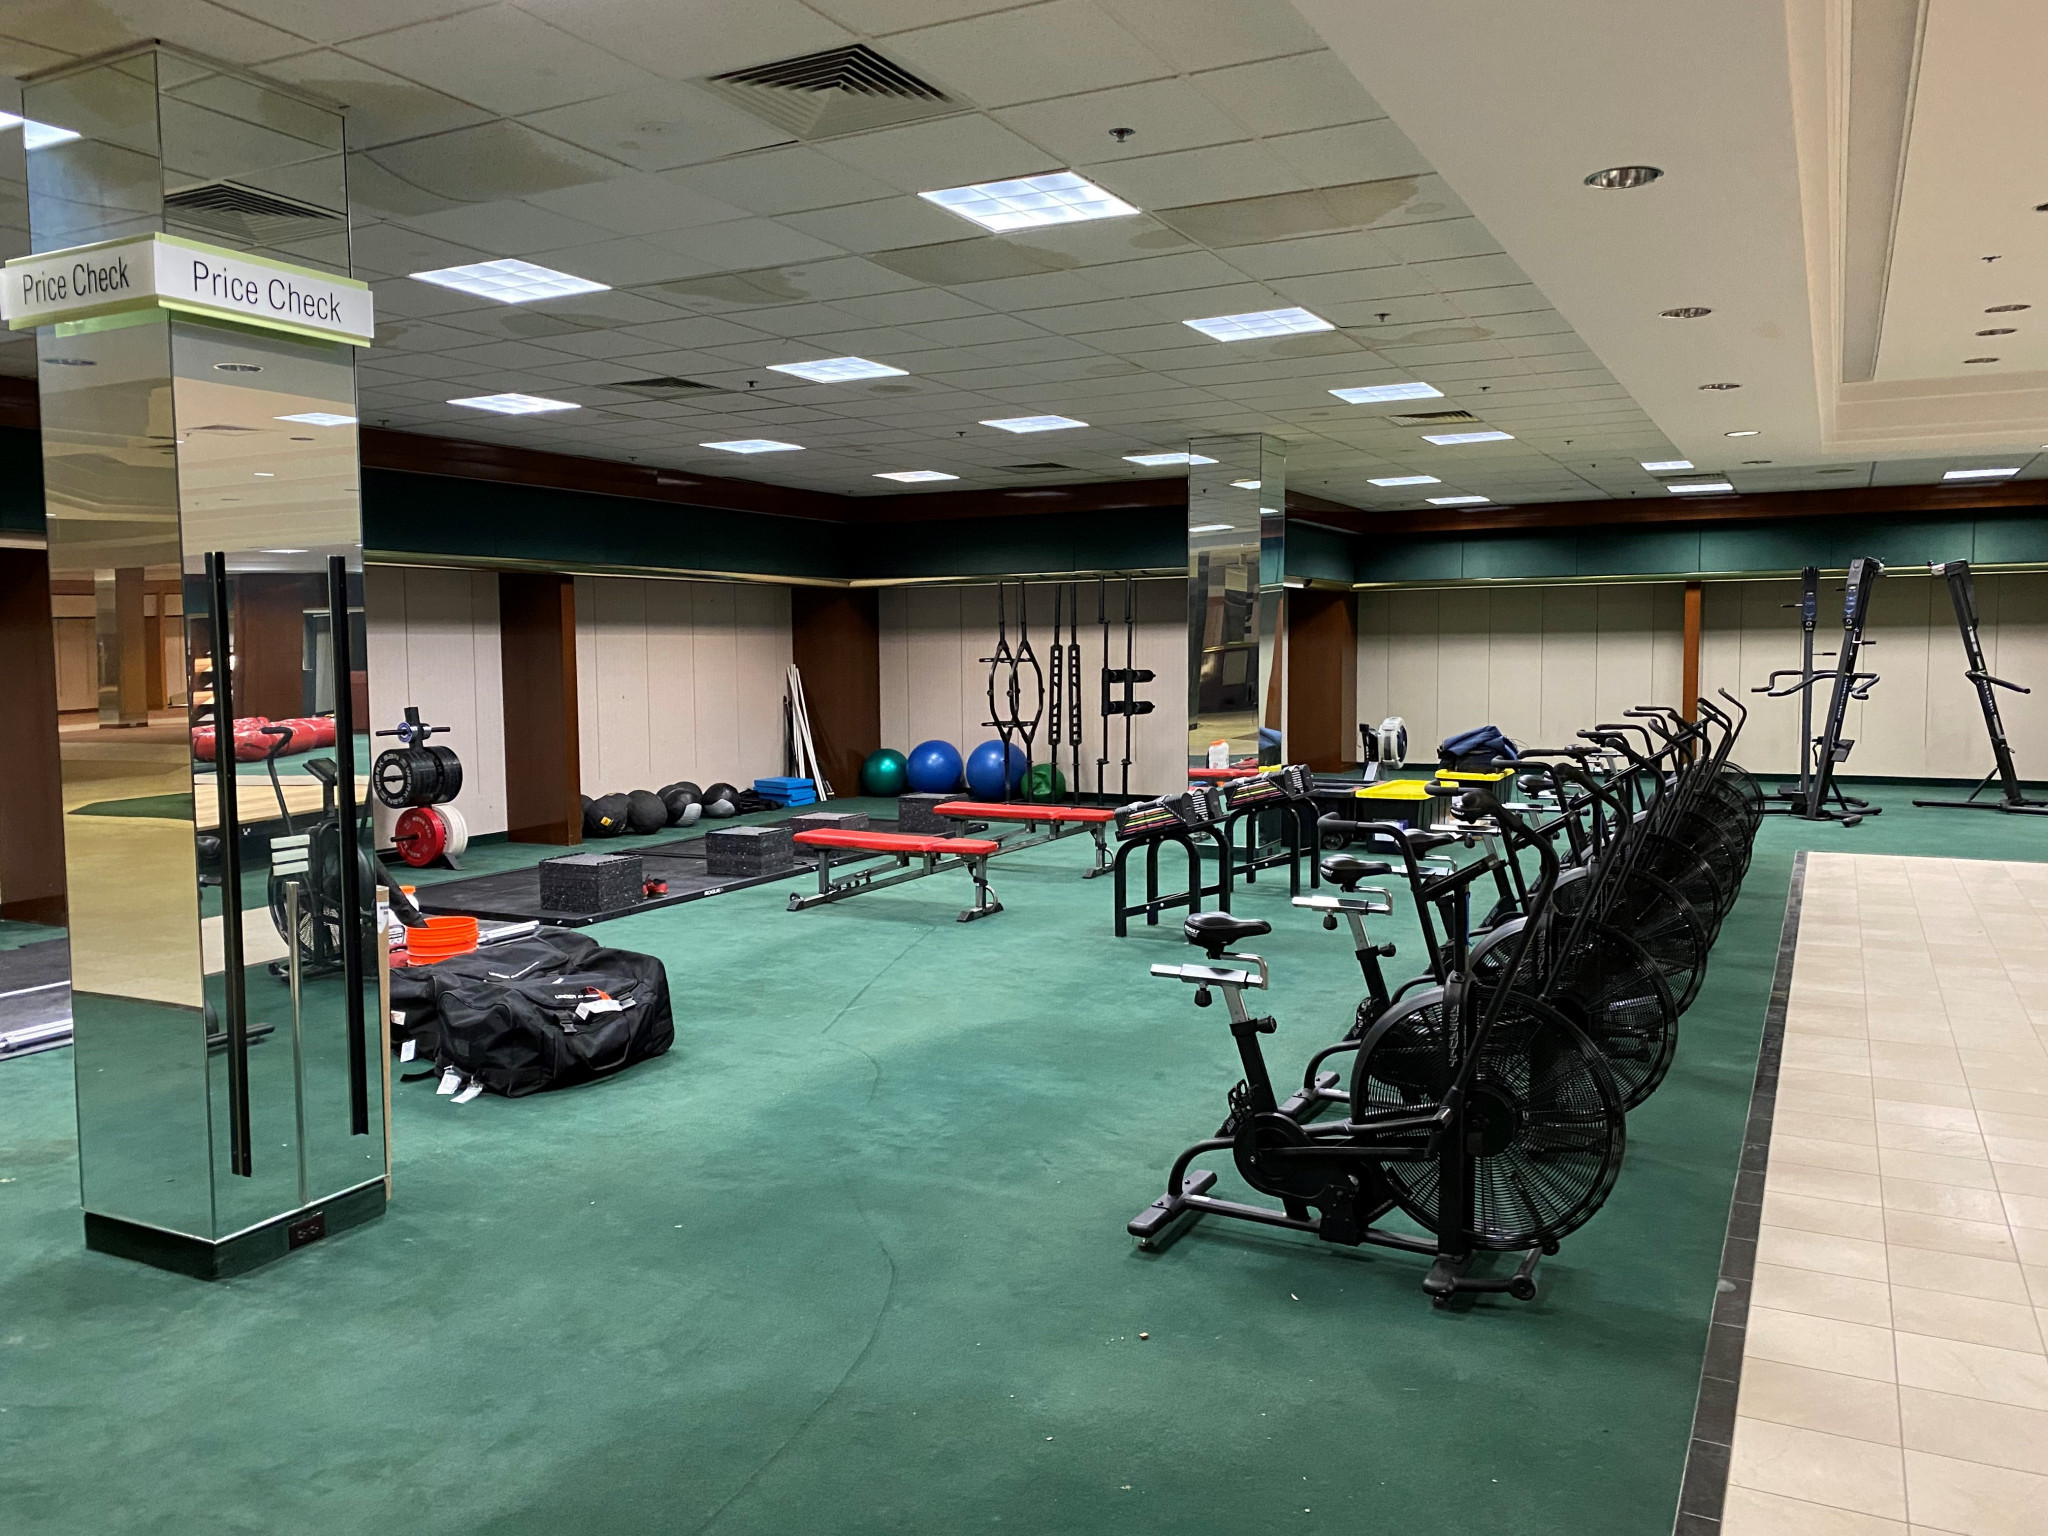 USA Boxing convert department store into training facility in preparation for Tokyo 2020